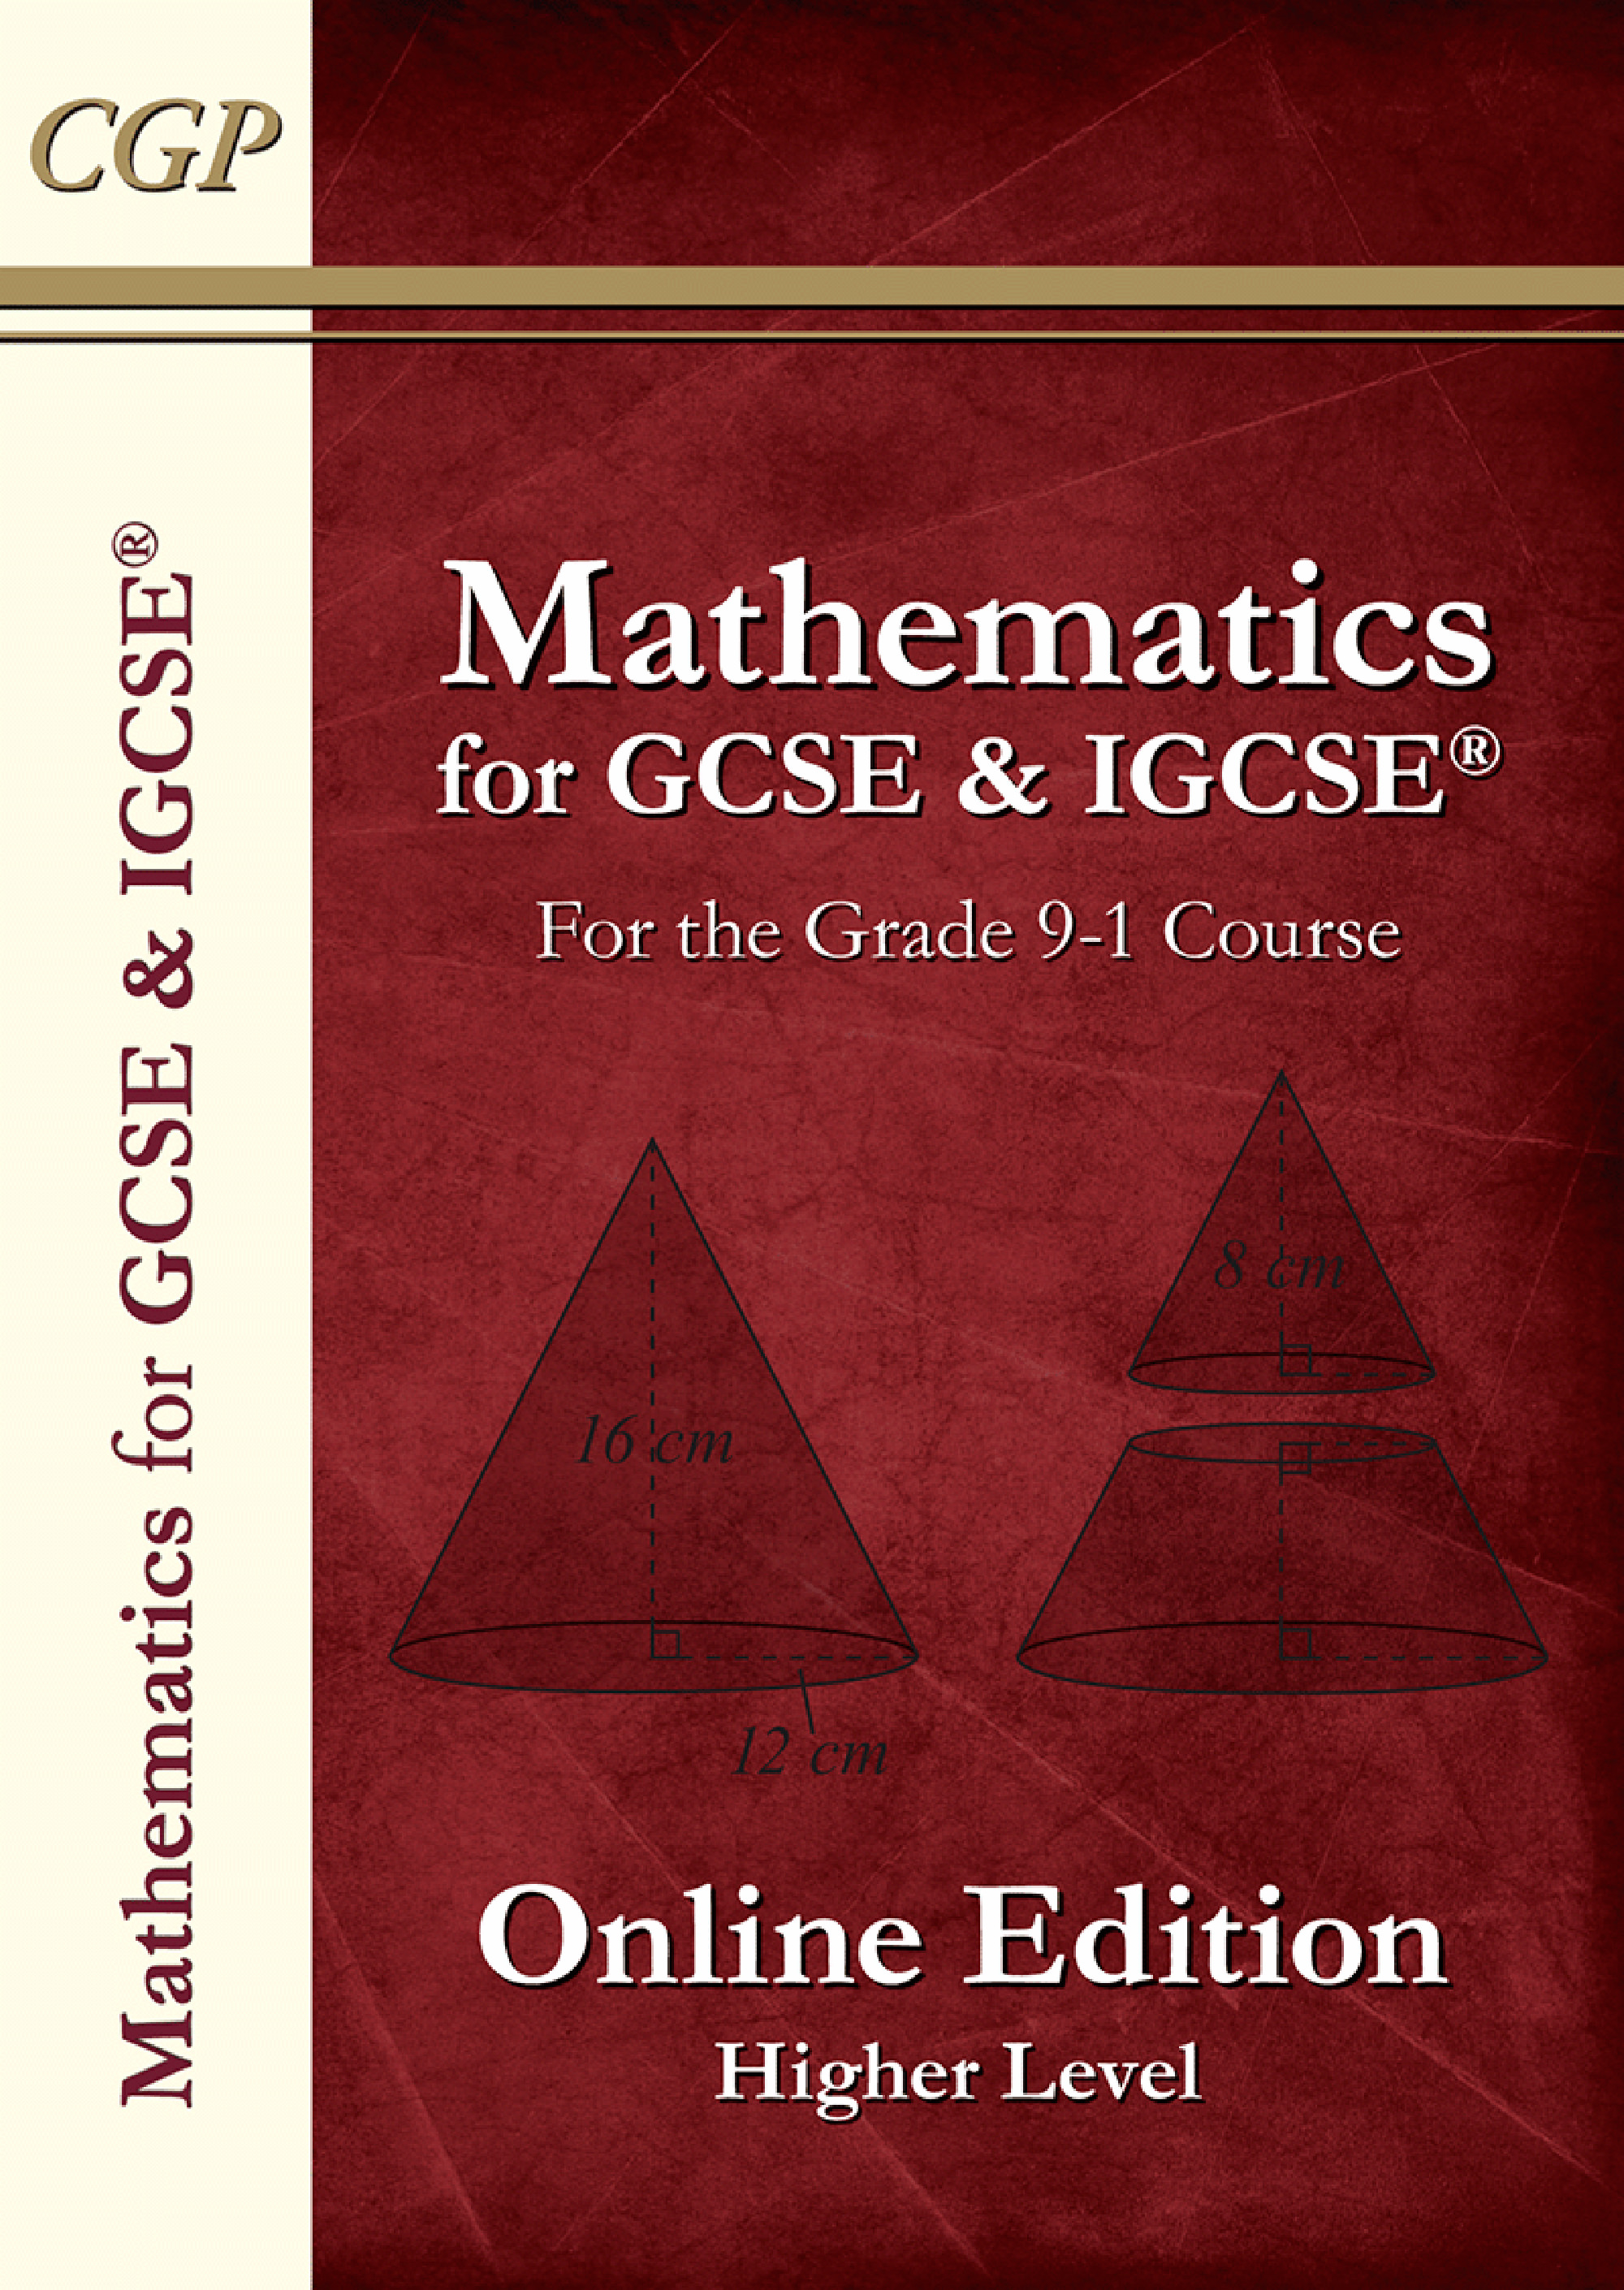 MHN43D - New Maths for GCSE Textbook: Online Edition with answers - Higher (for the Grade 9-1 Course